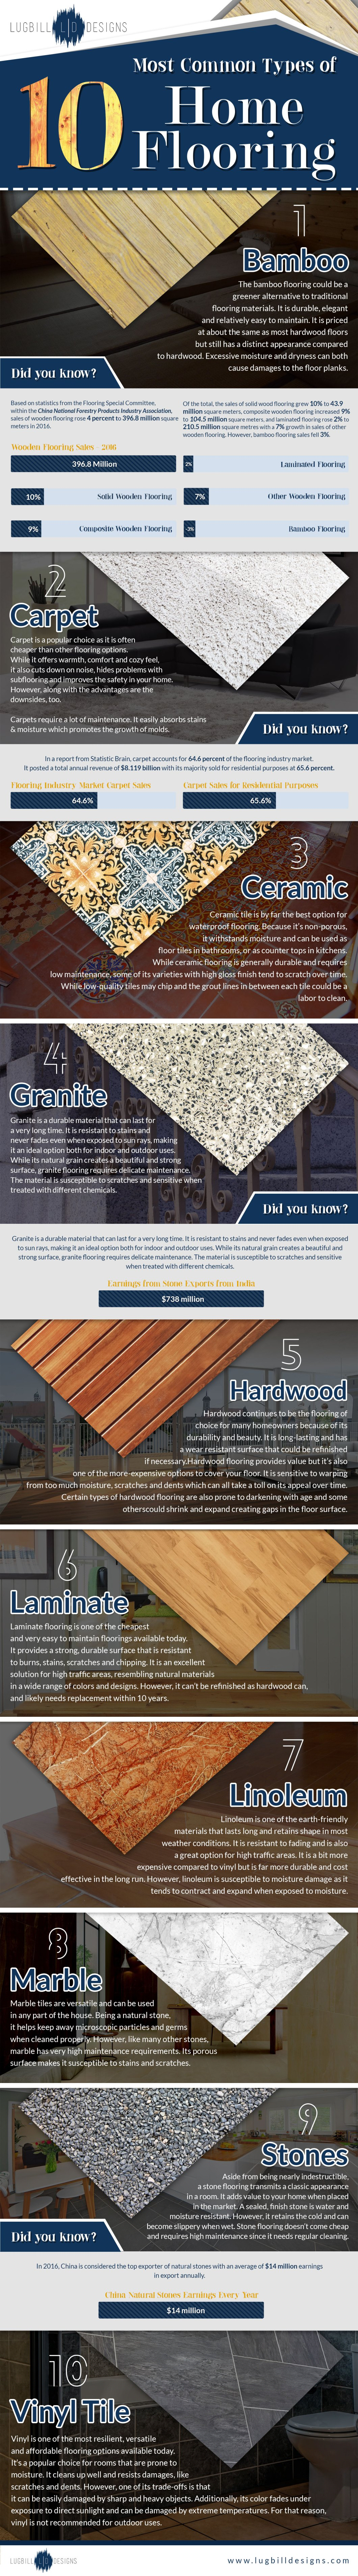 Home Flooring Catalogue: Floor Them in Style! - Infographic